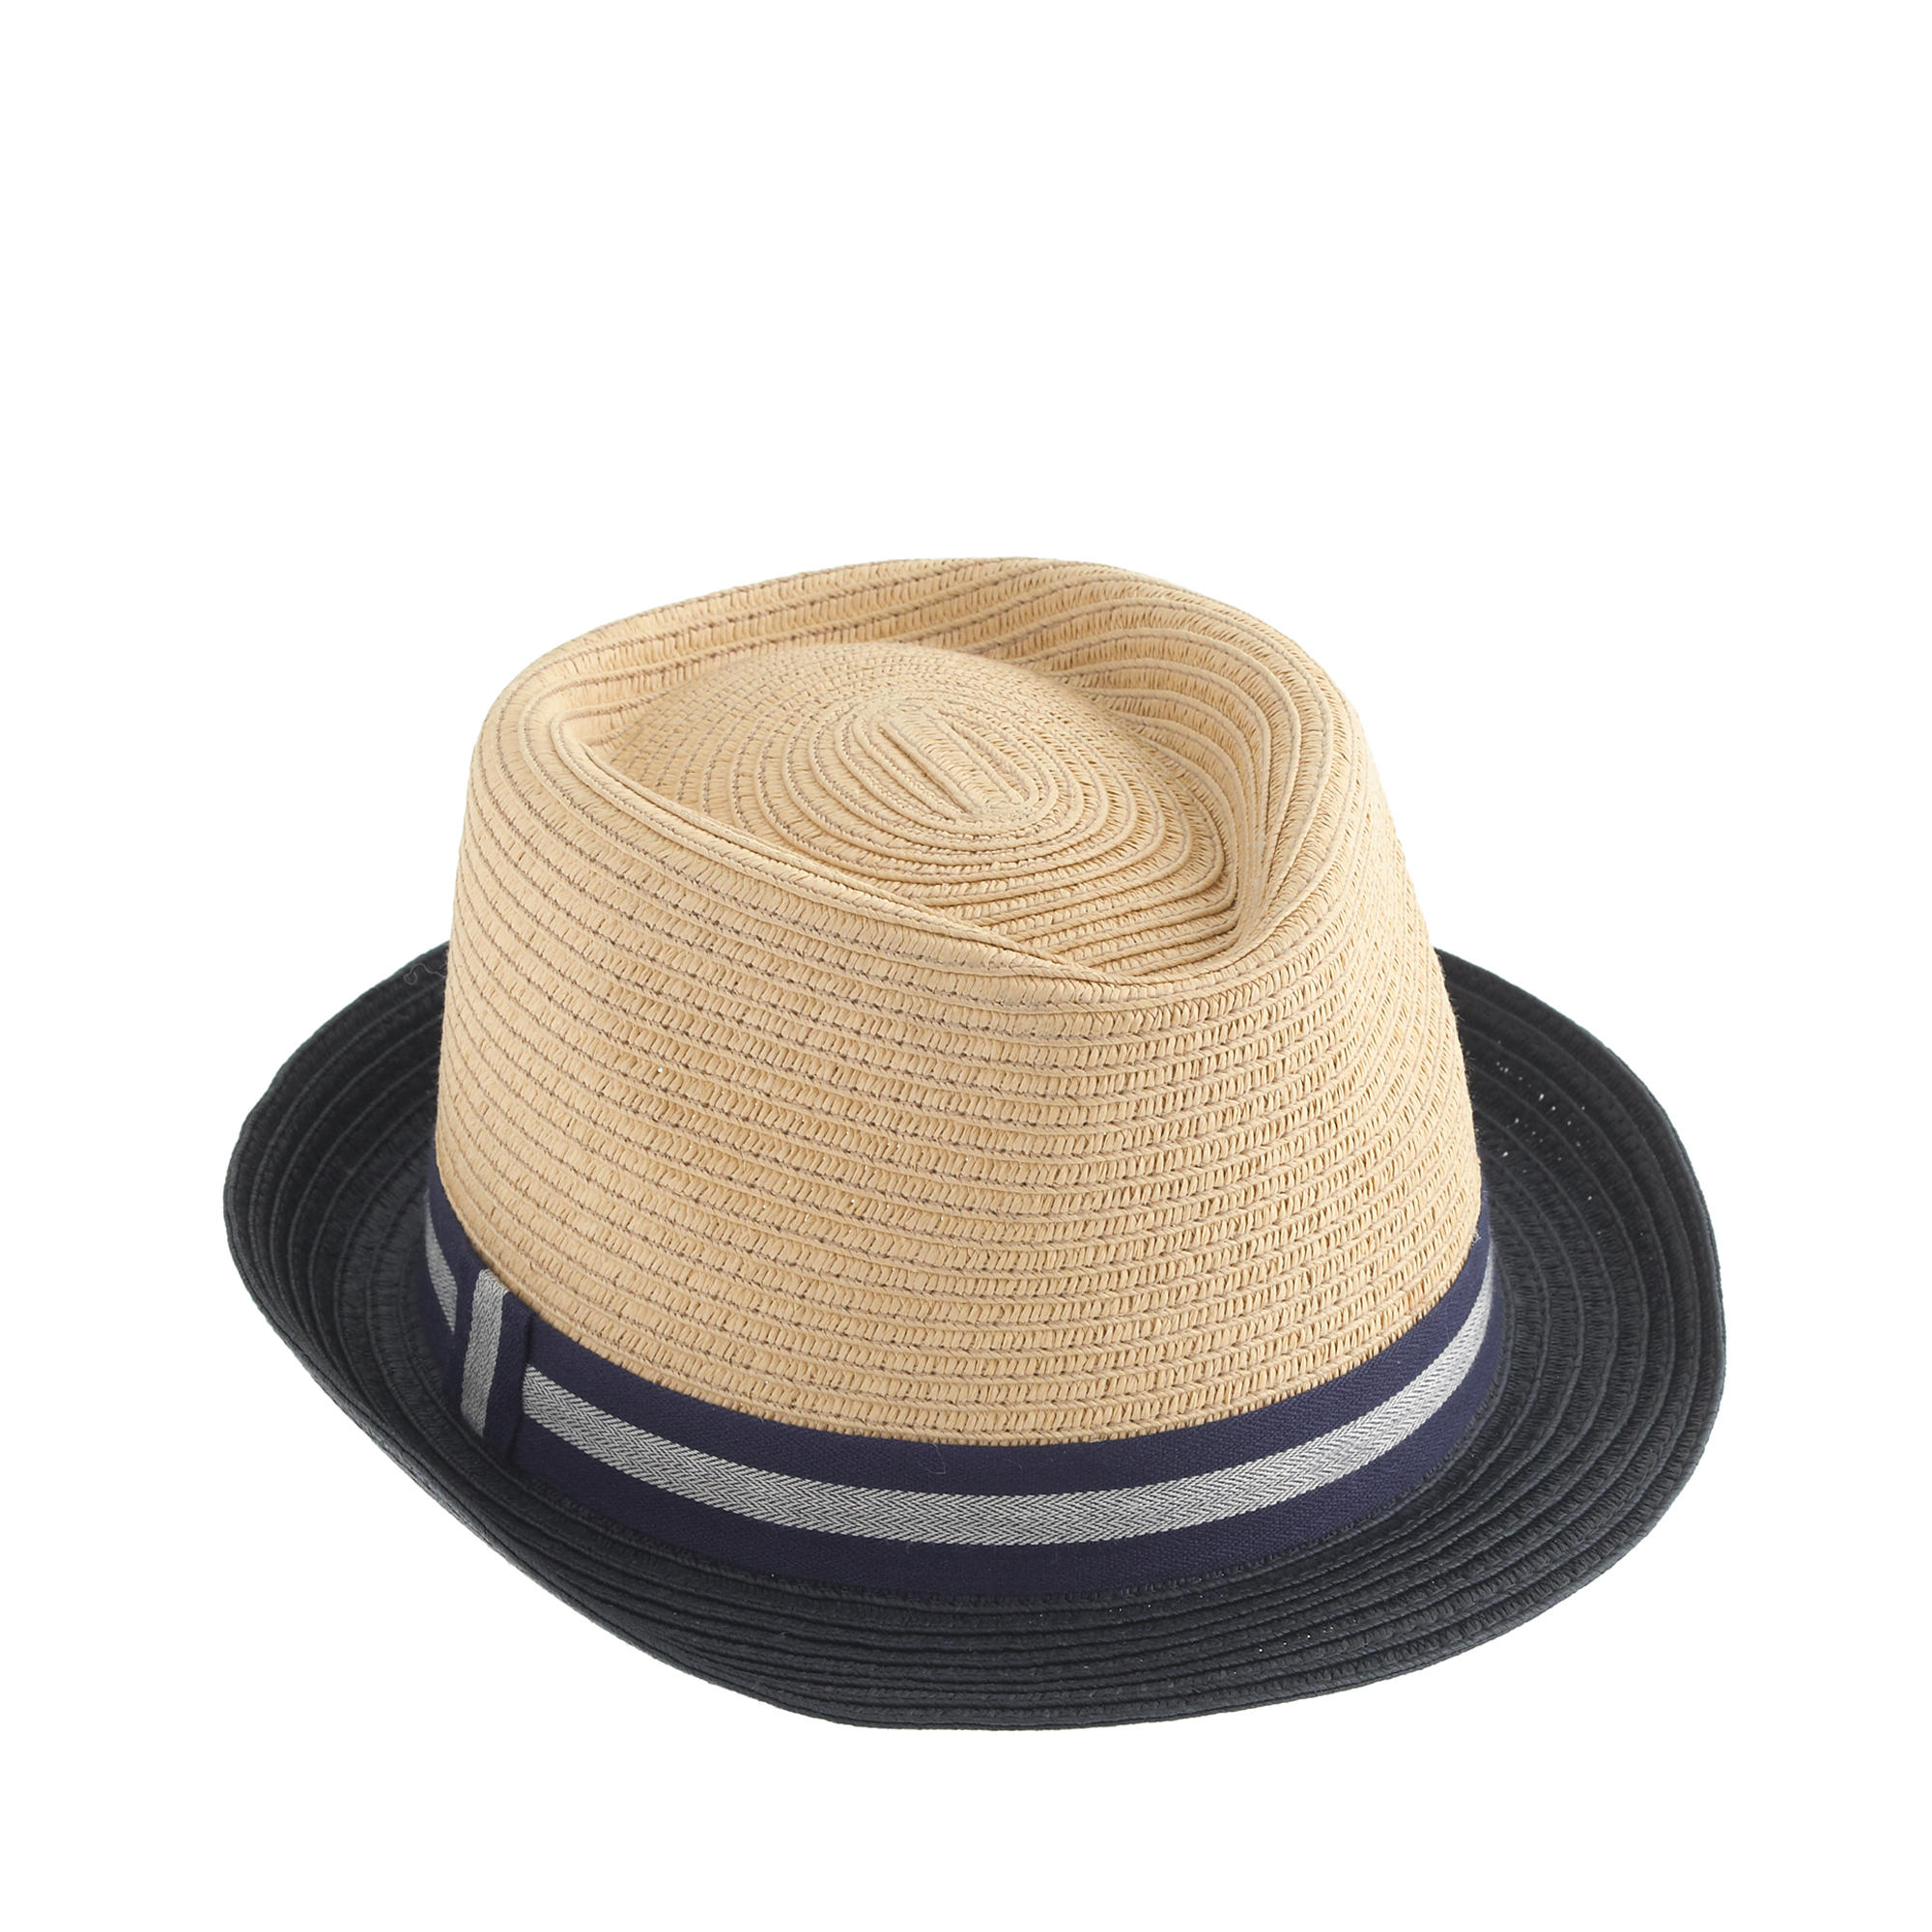 Hats and caps have always been the main focused products of Jas Fashion. Our hat range is one of the largest in Australia. We stock more than styles at any one time in both adult and kids' hats.